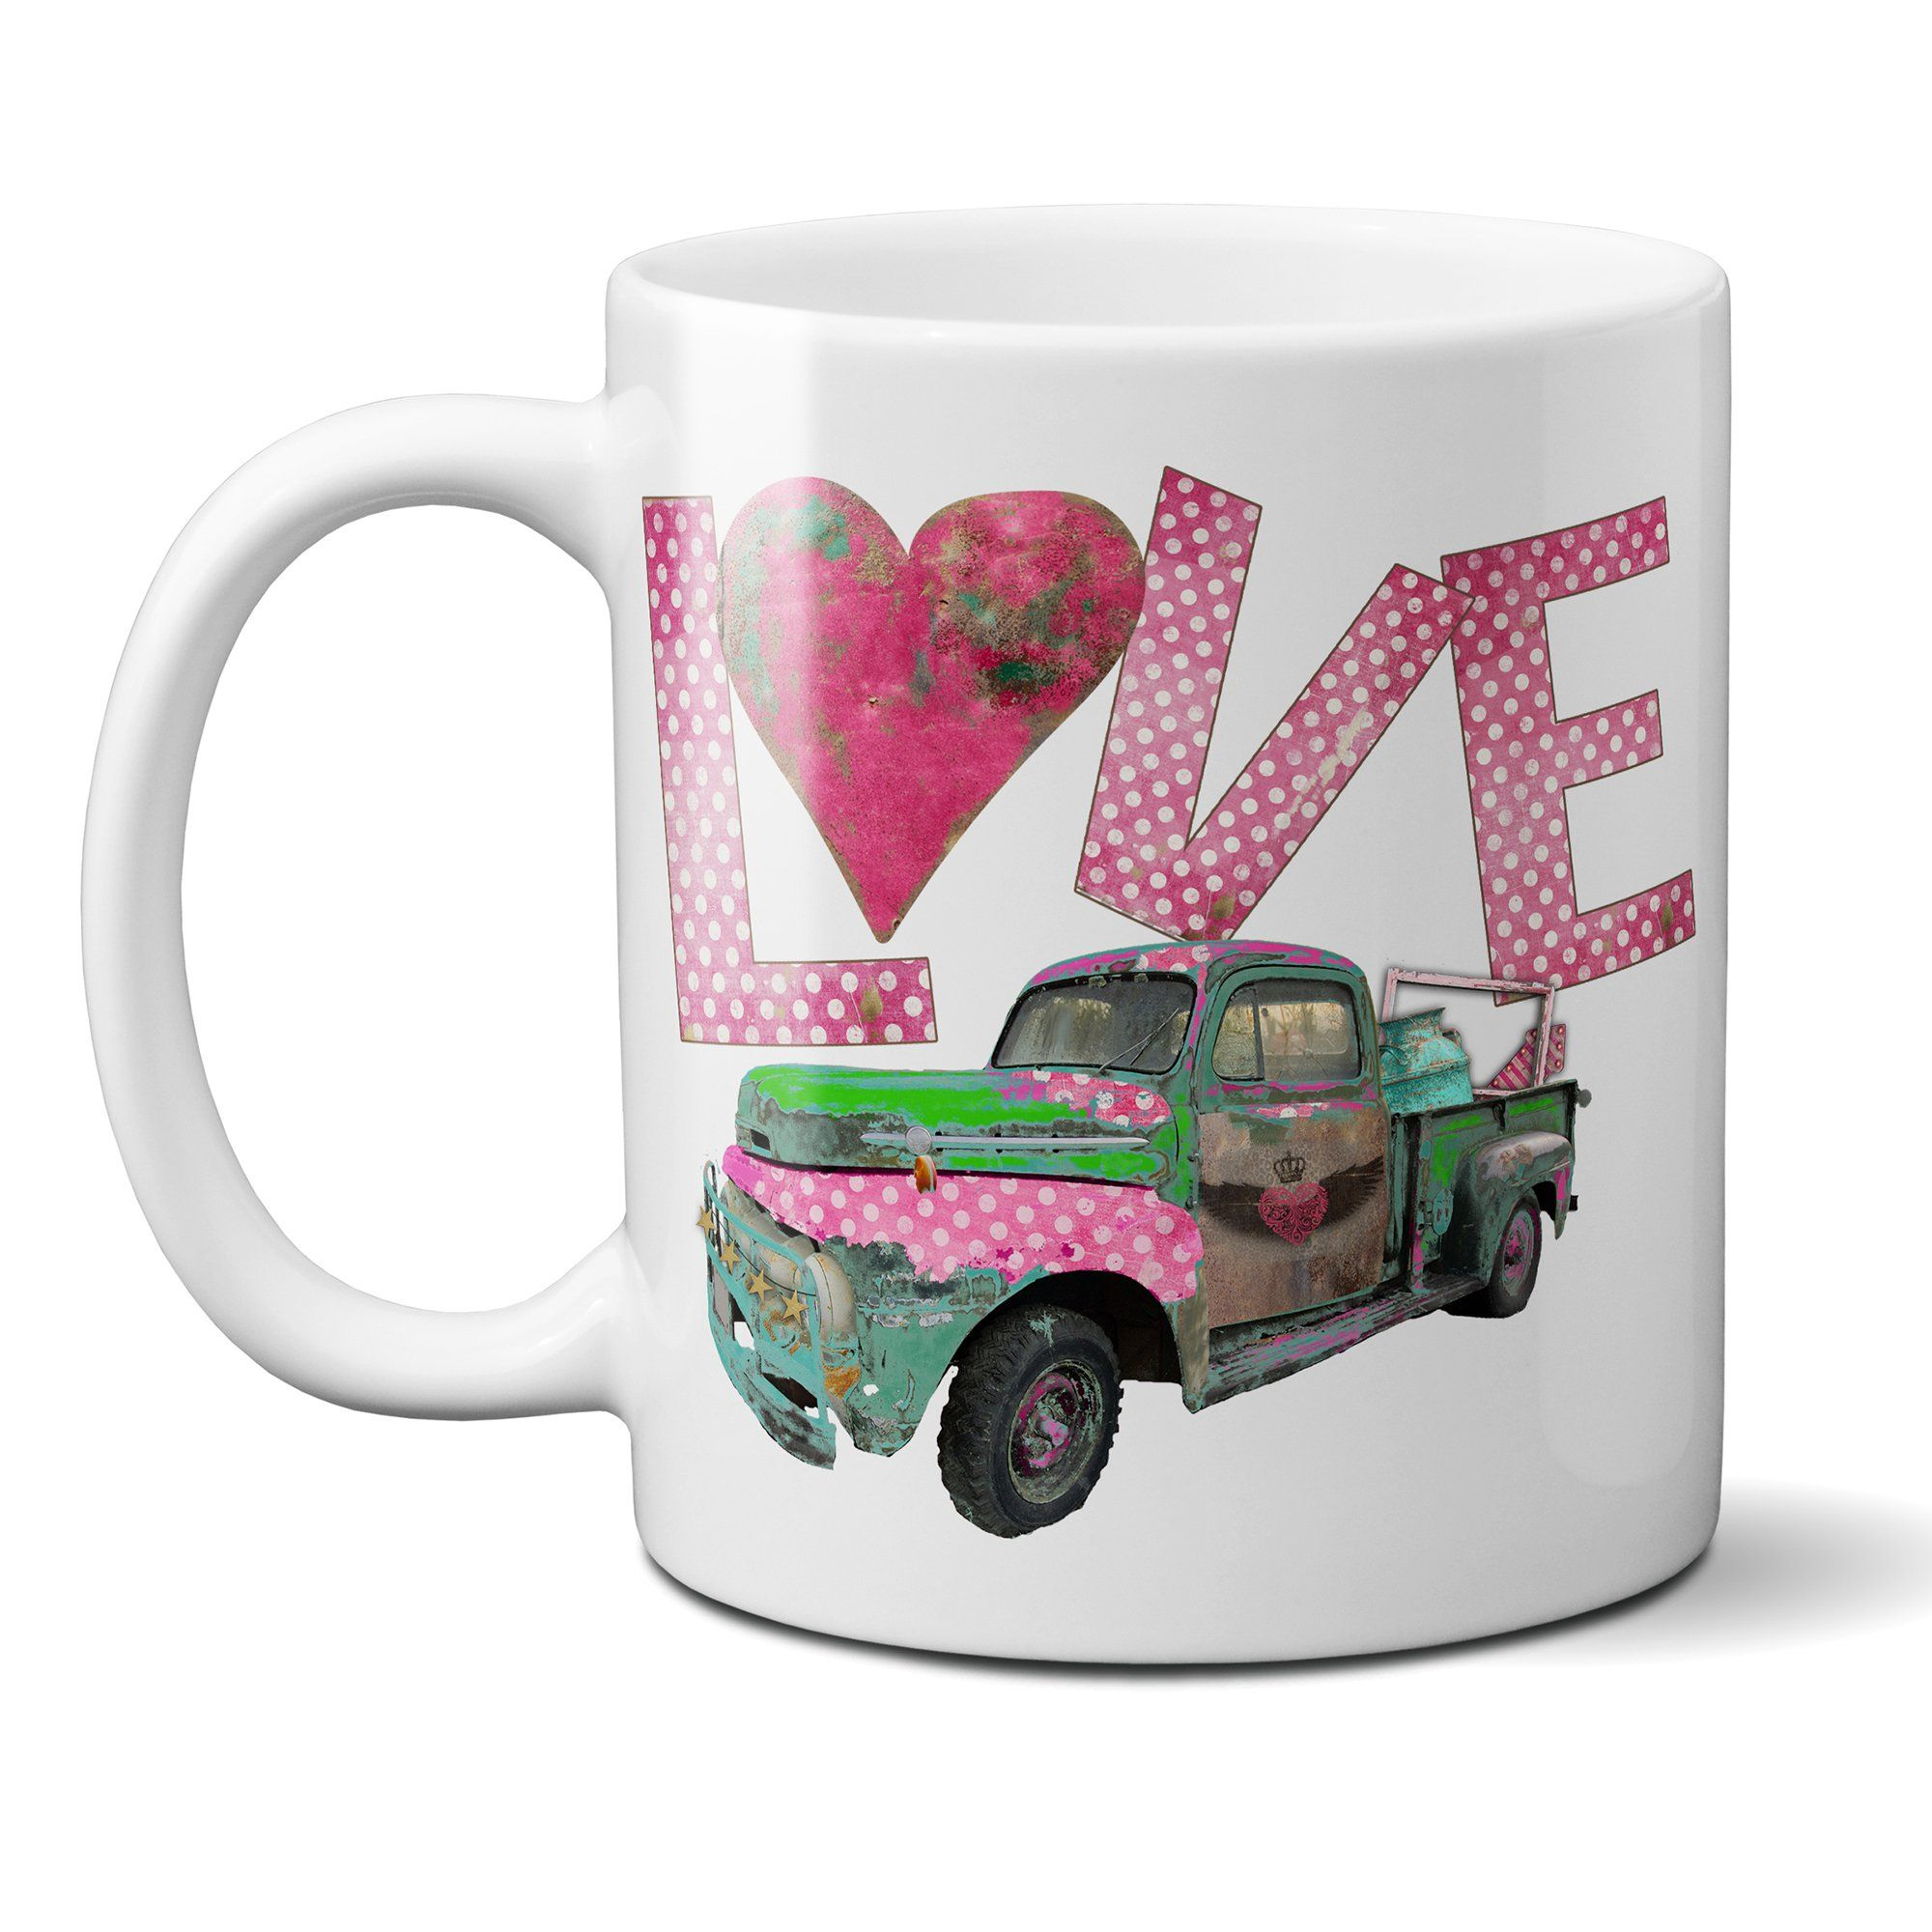 Junk Truck Love Coffee Mug with Vintage Rusty Junk Truck